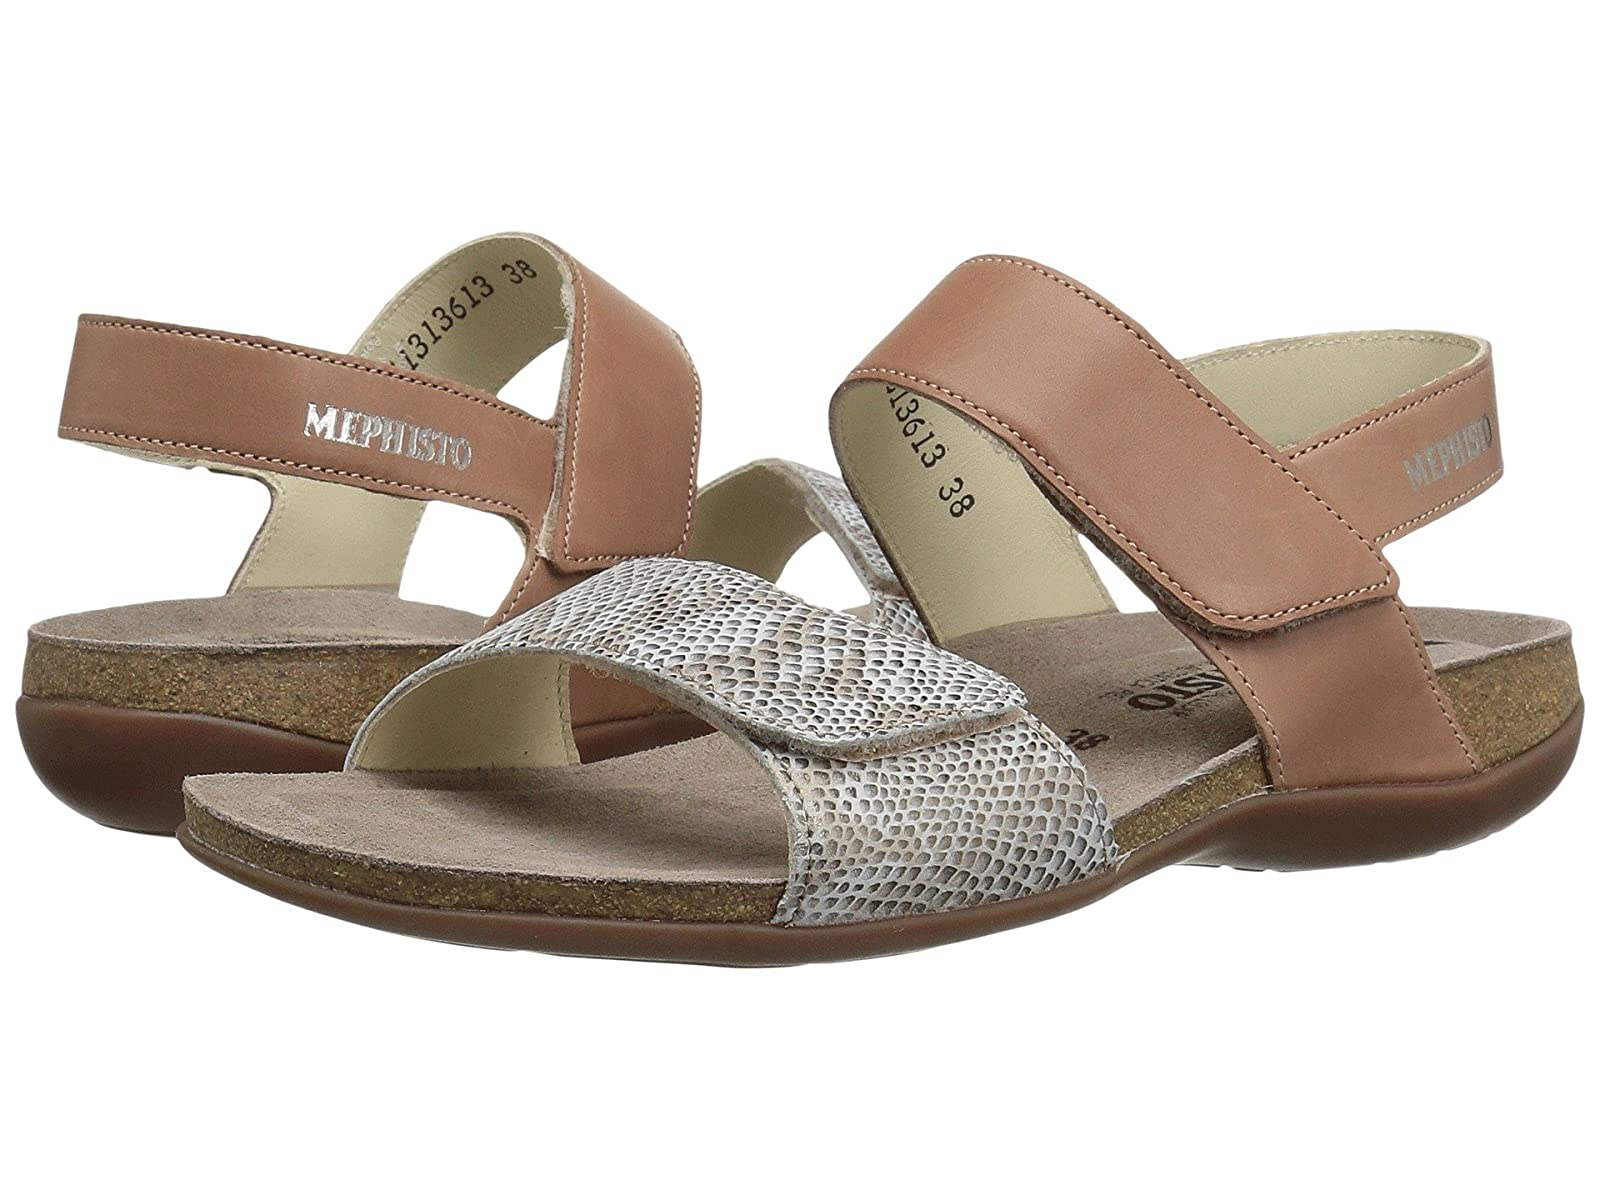 Mephisto AgaveAtmospheric grades have affordable shoes